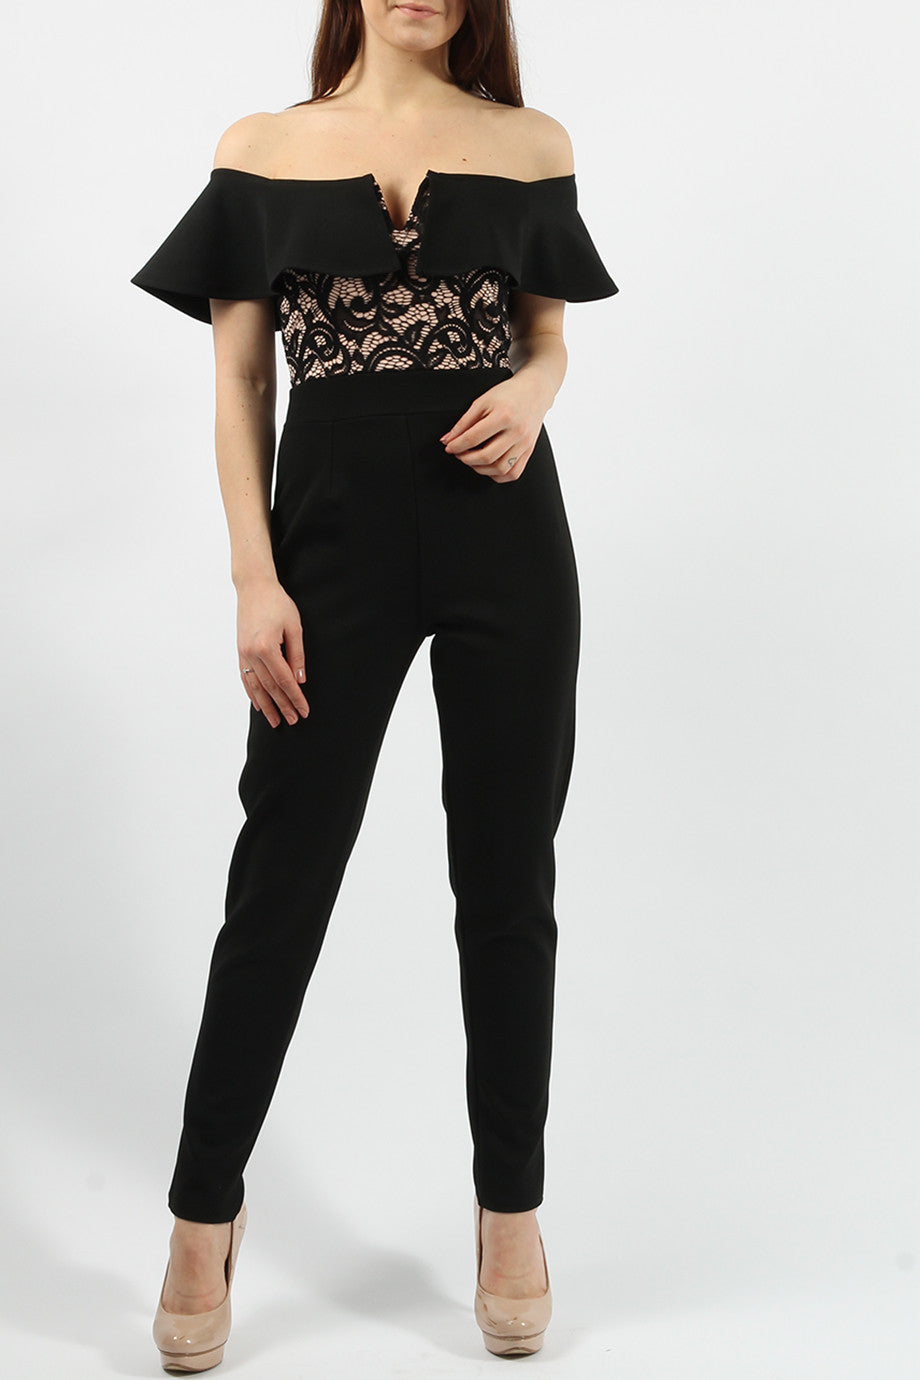 NAOMI BLACK V CUT BARDOT LACE  JUMPSUIT